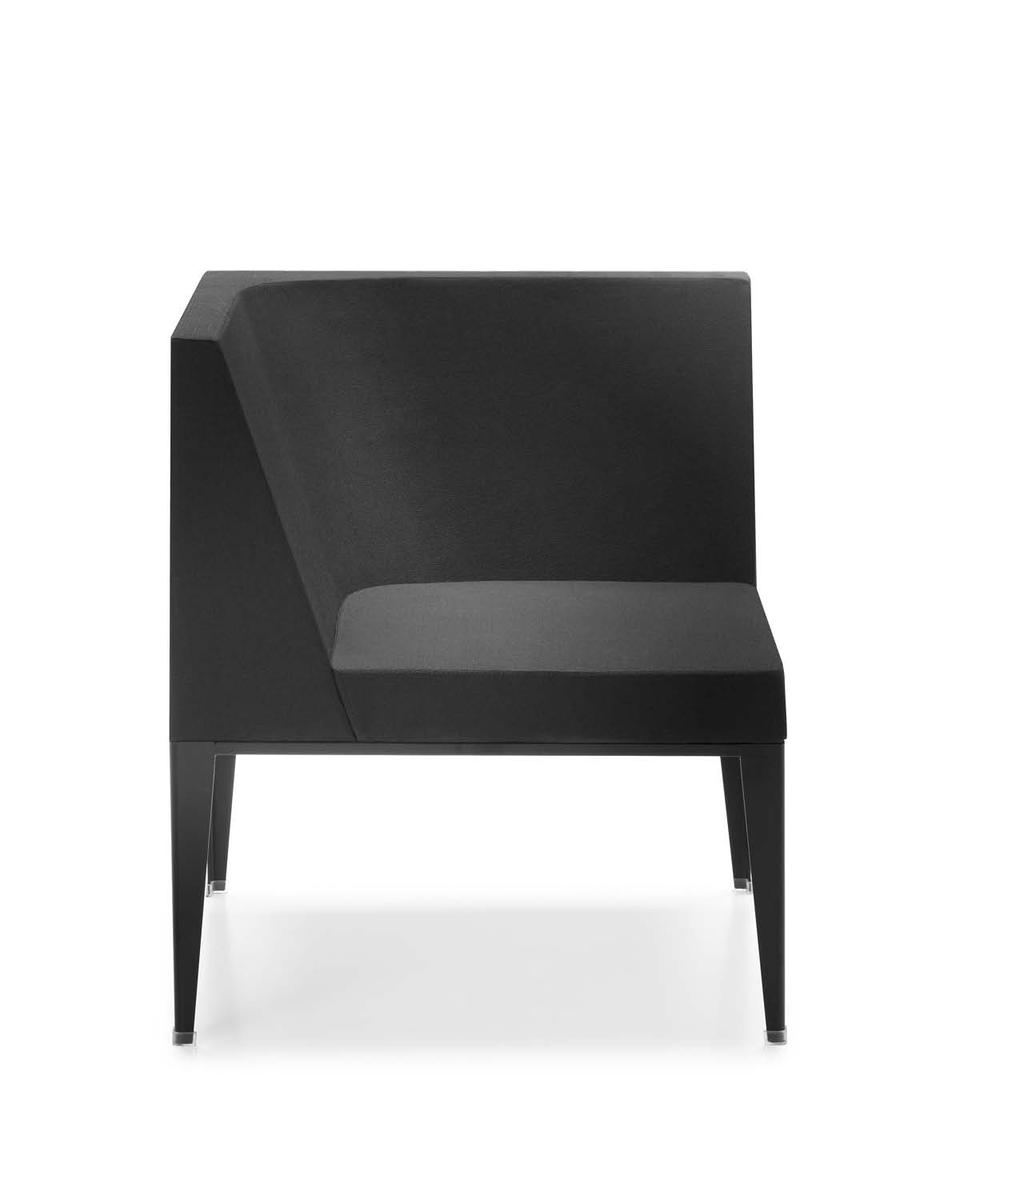 FIRST RECEPTION SEAT Backrest Inner metal structure covered by high density upholstered polyurethane injected foam Interior 11 mm steel rod Seat 16 mm thick inner particle board Structure 40x15x1,5